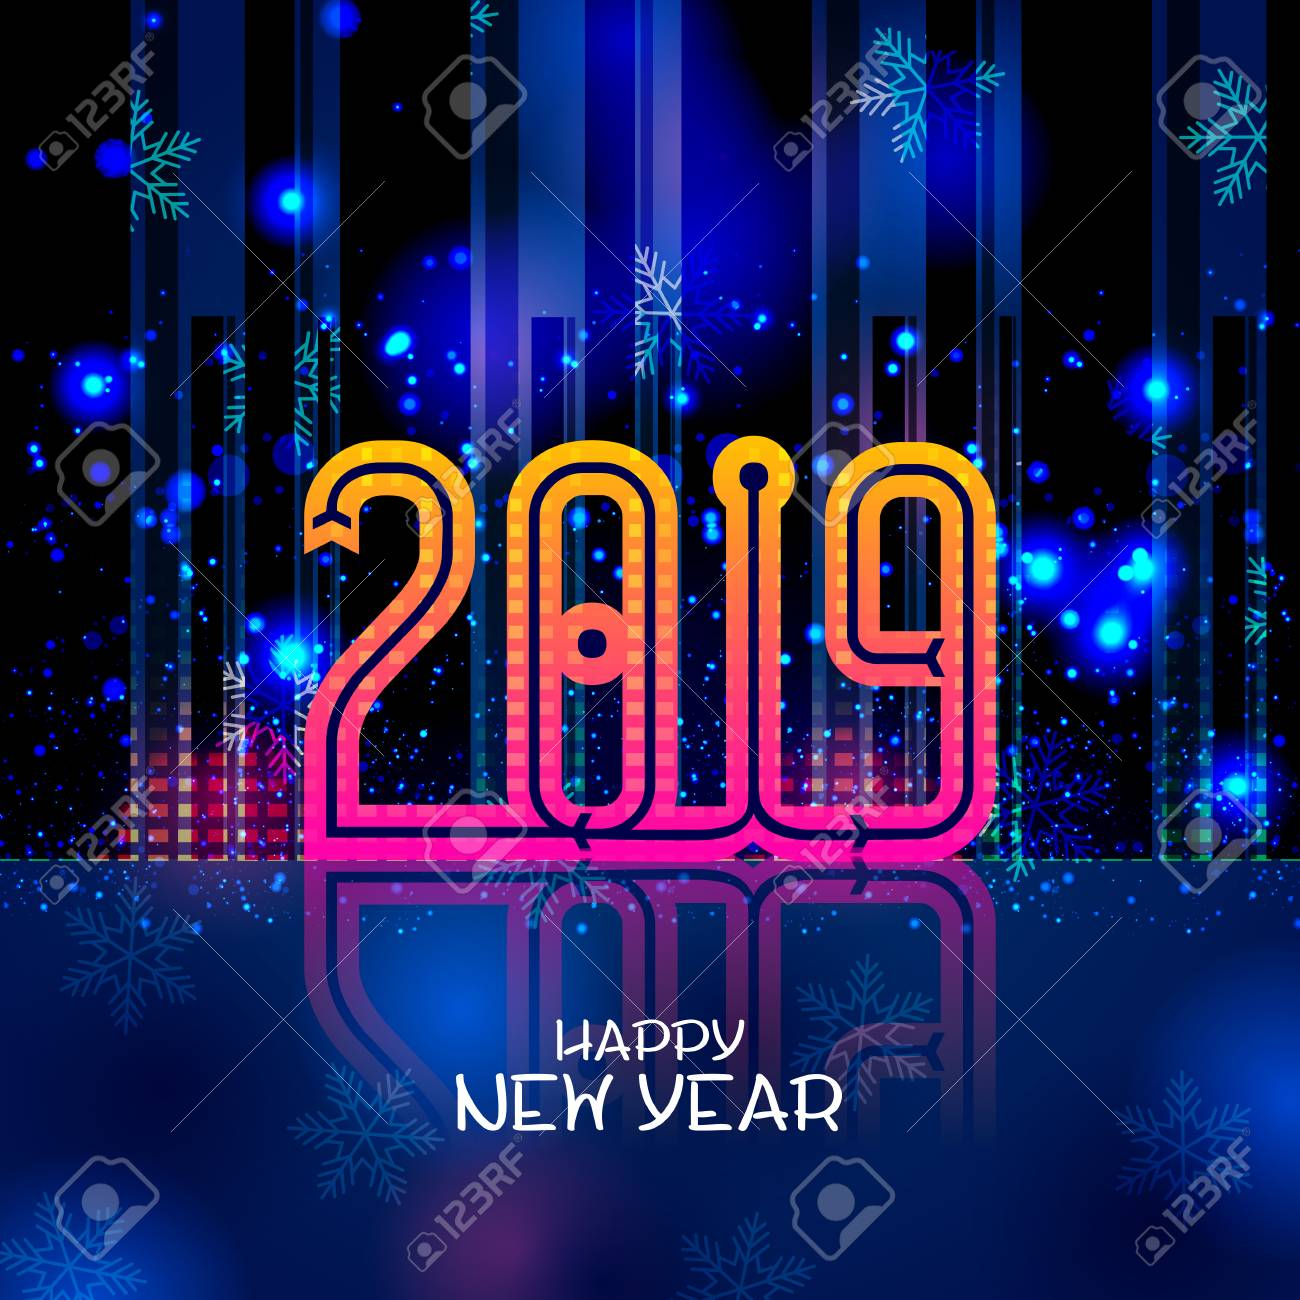 Happy New Year Editing Background 53